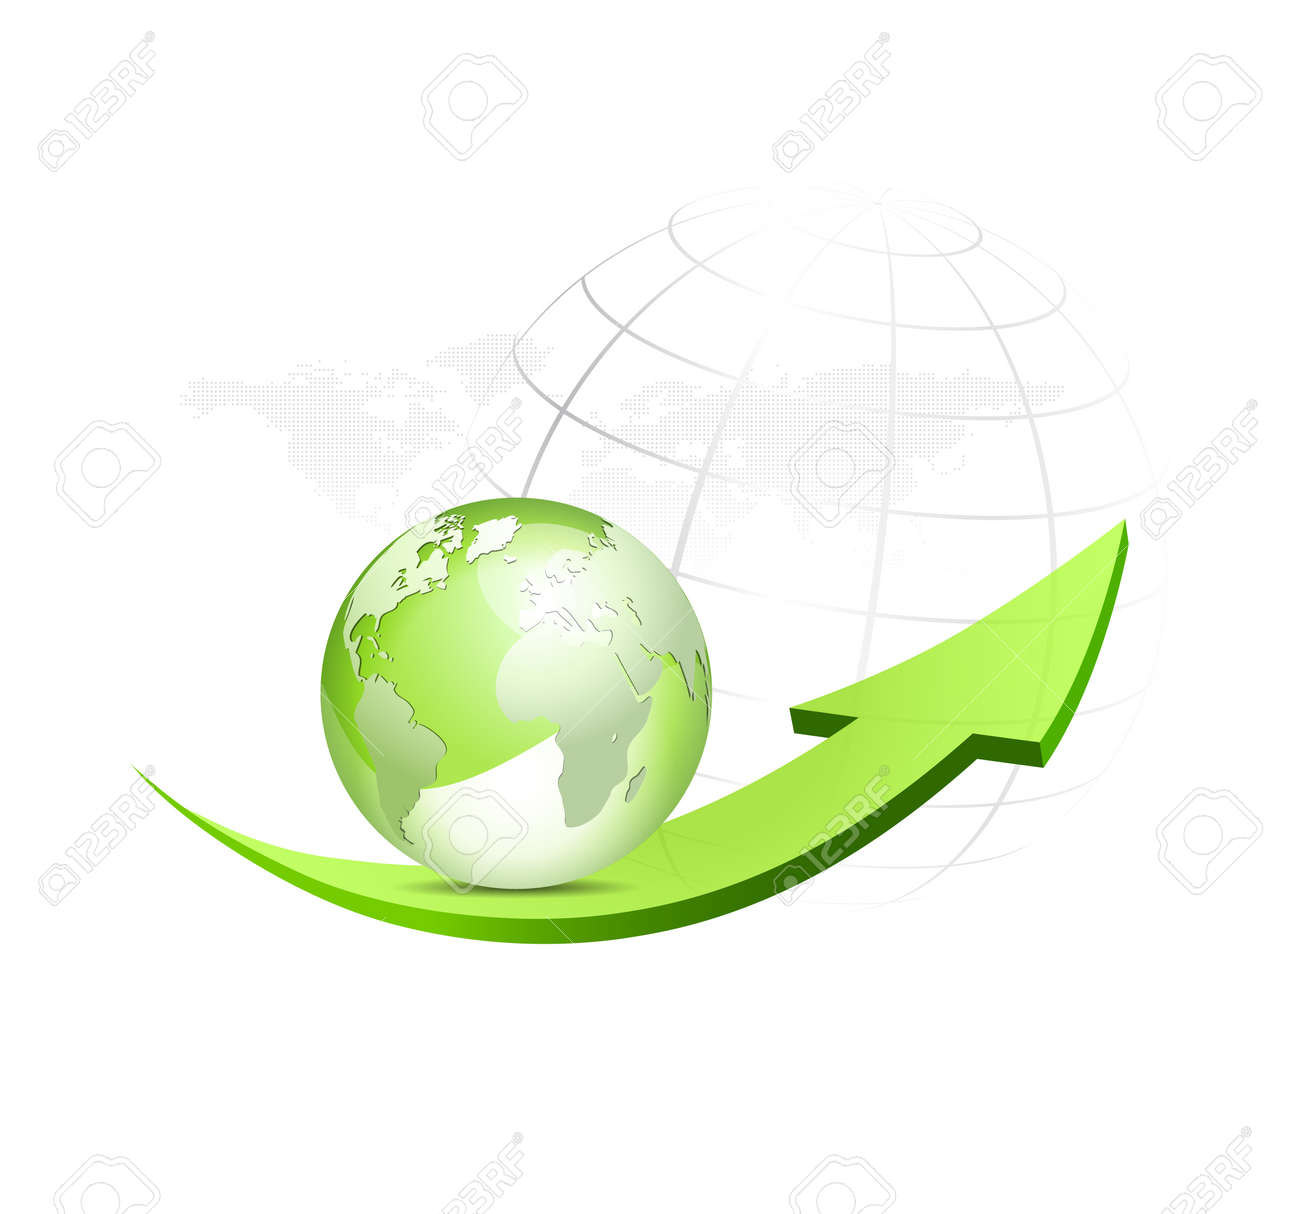 Green globe with arrow and dotted world map in the background green globe with arrow and dotted world map in the background glossy eco symbol gumiabroncs Image collections